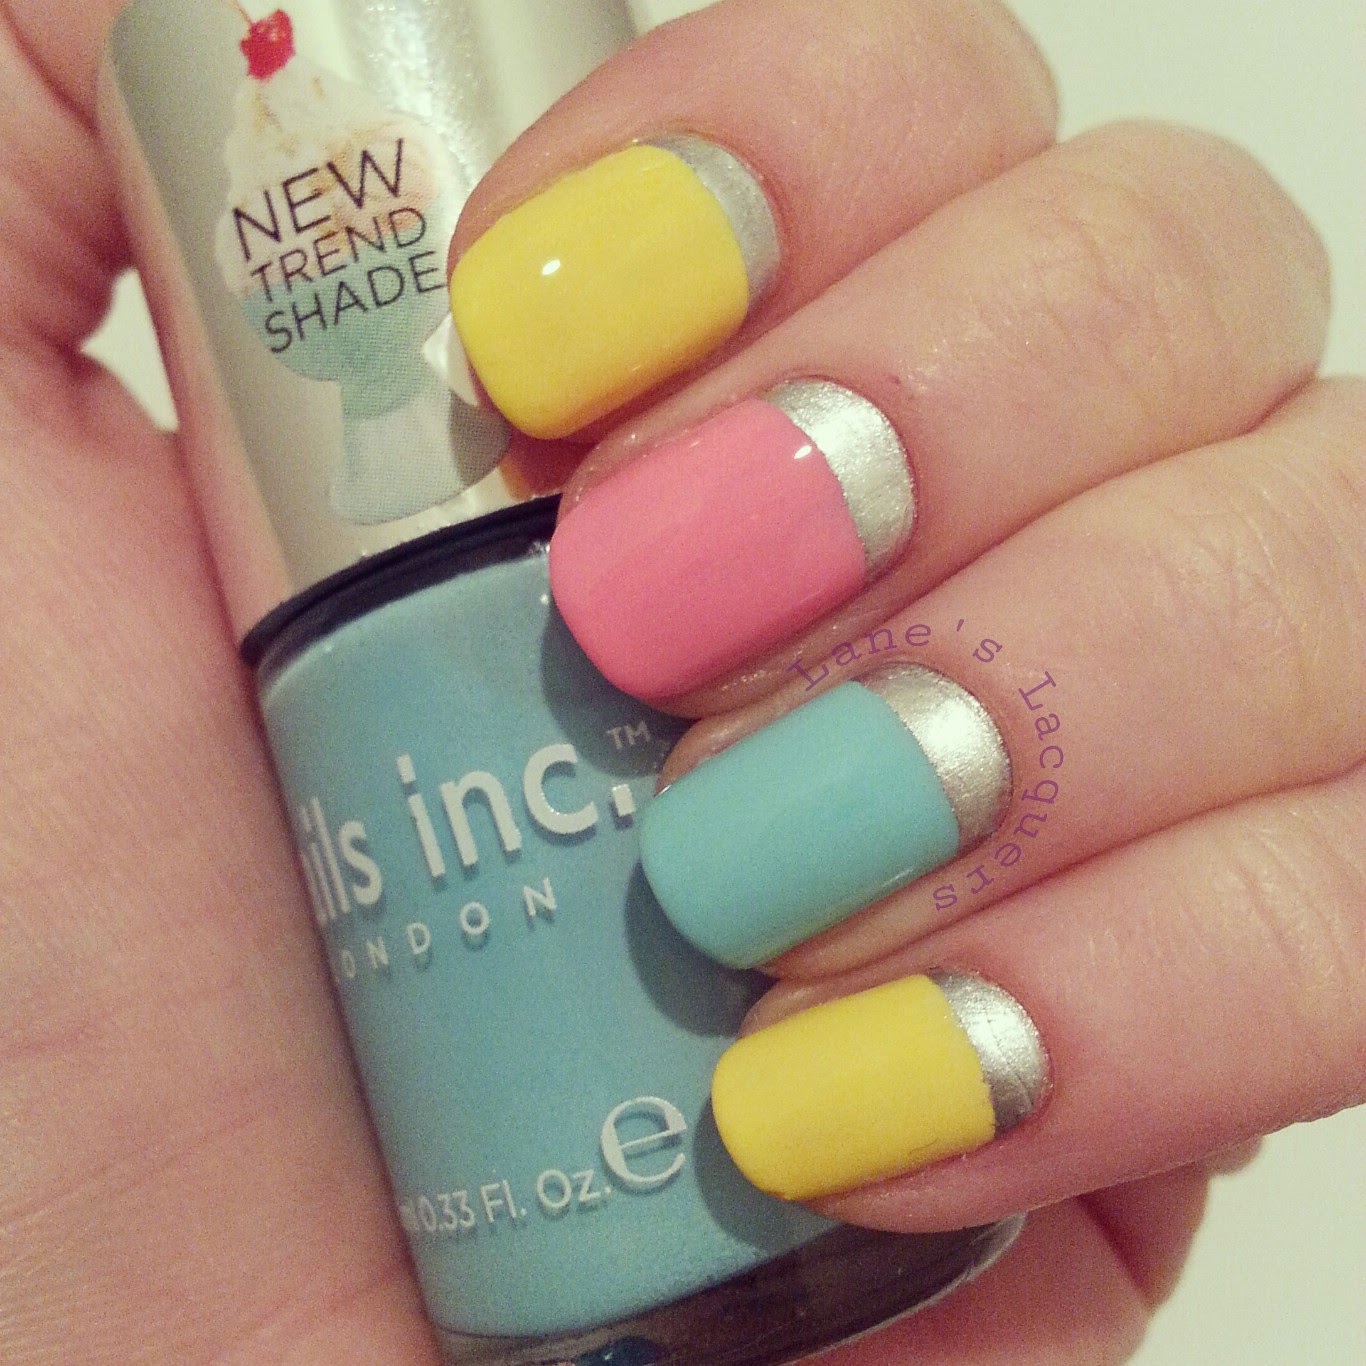 tri-polish-challenge-pastel-pink-blue-yellow-nail-art